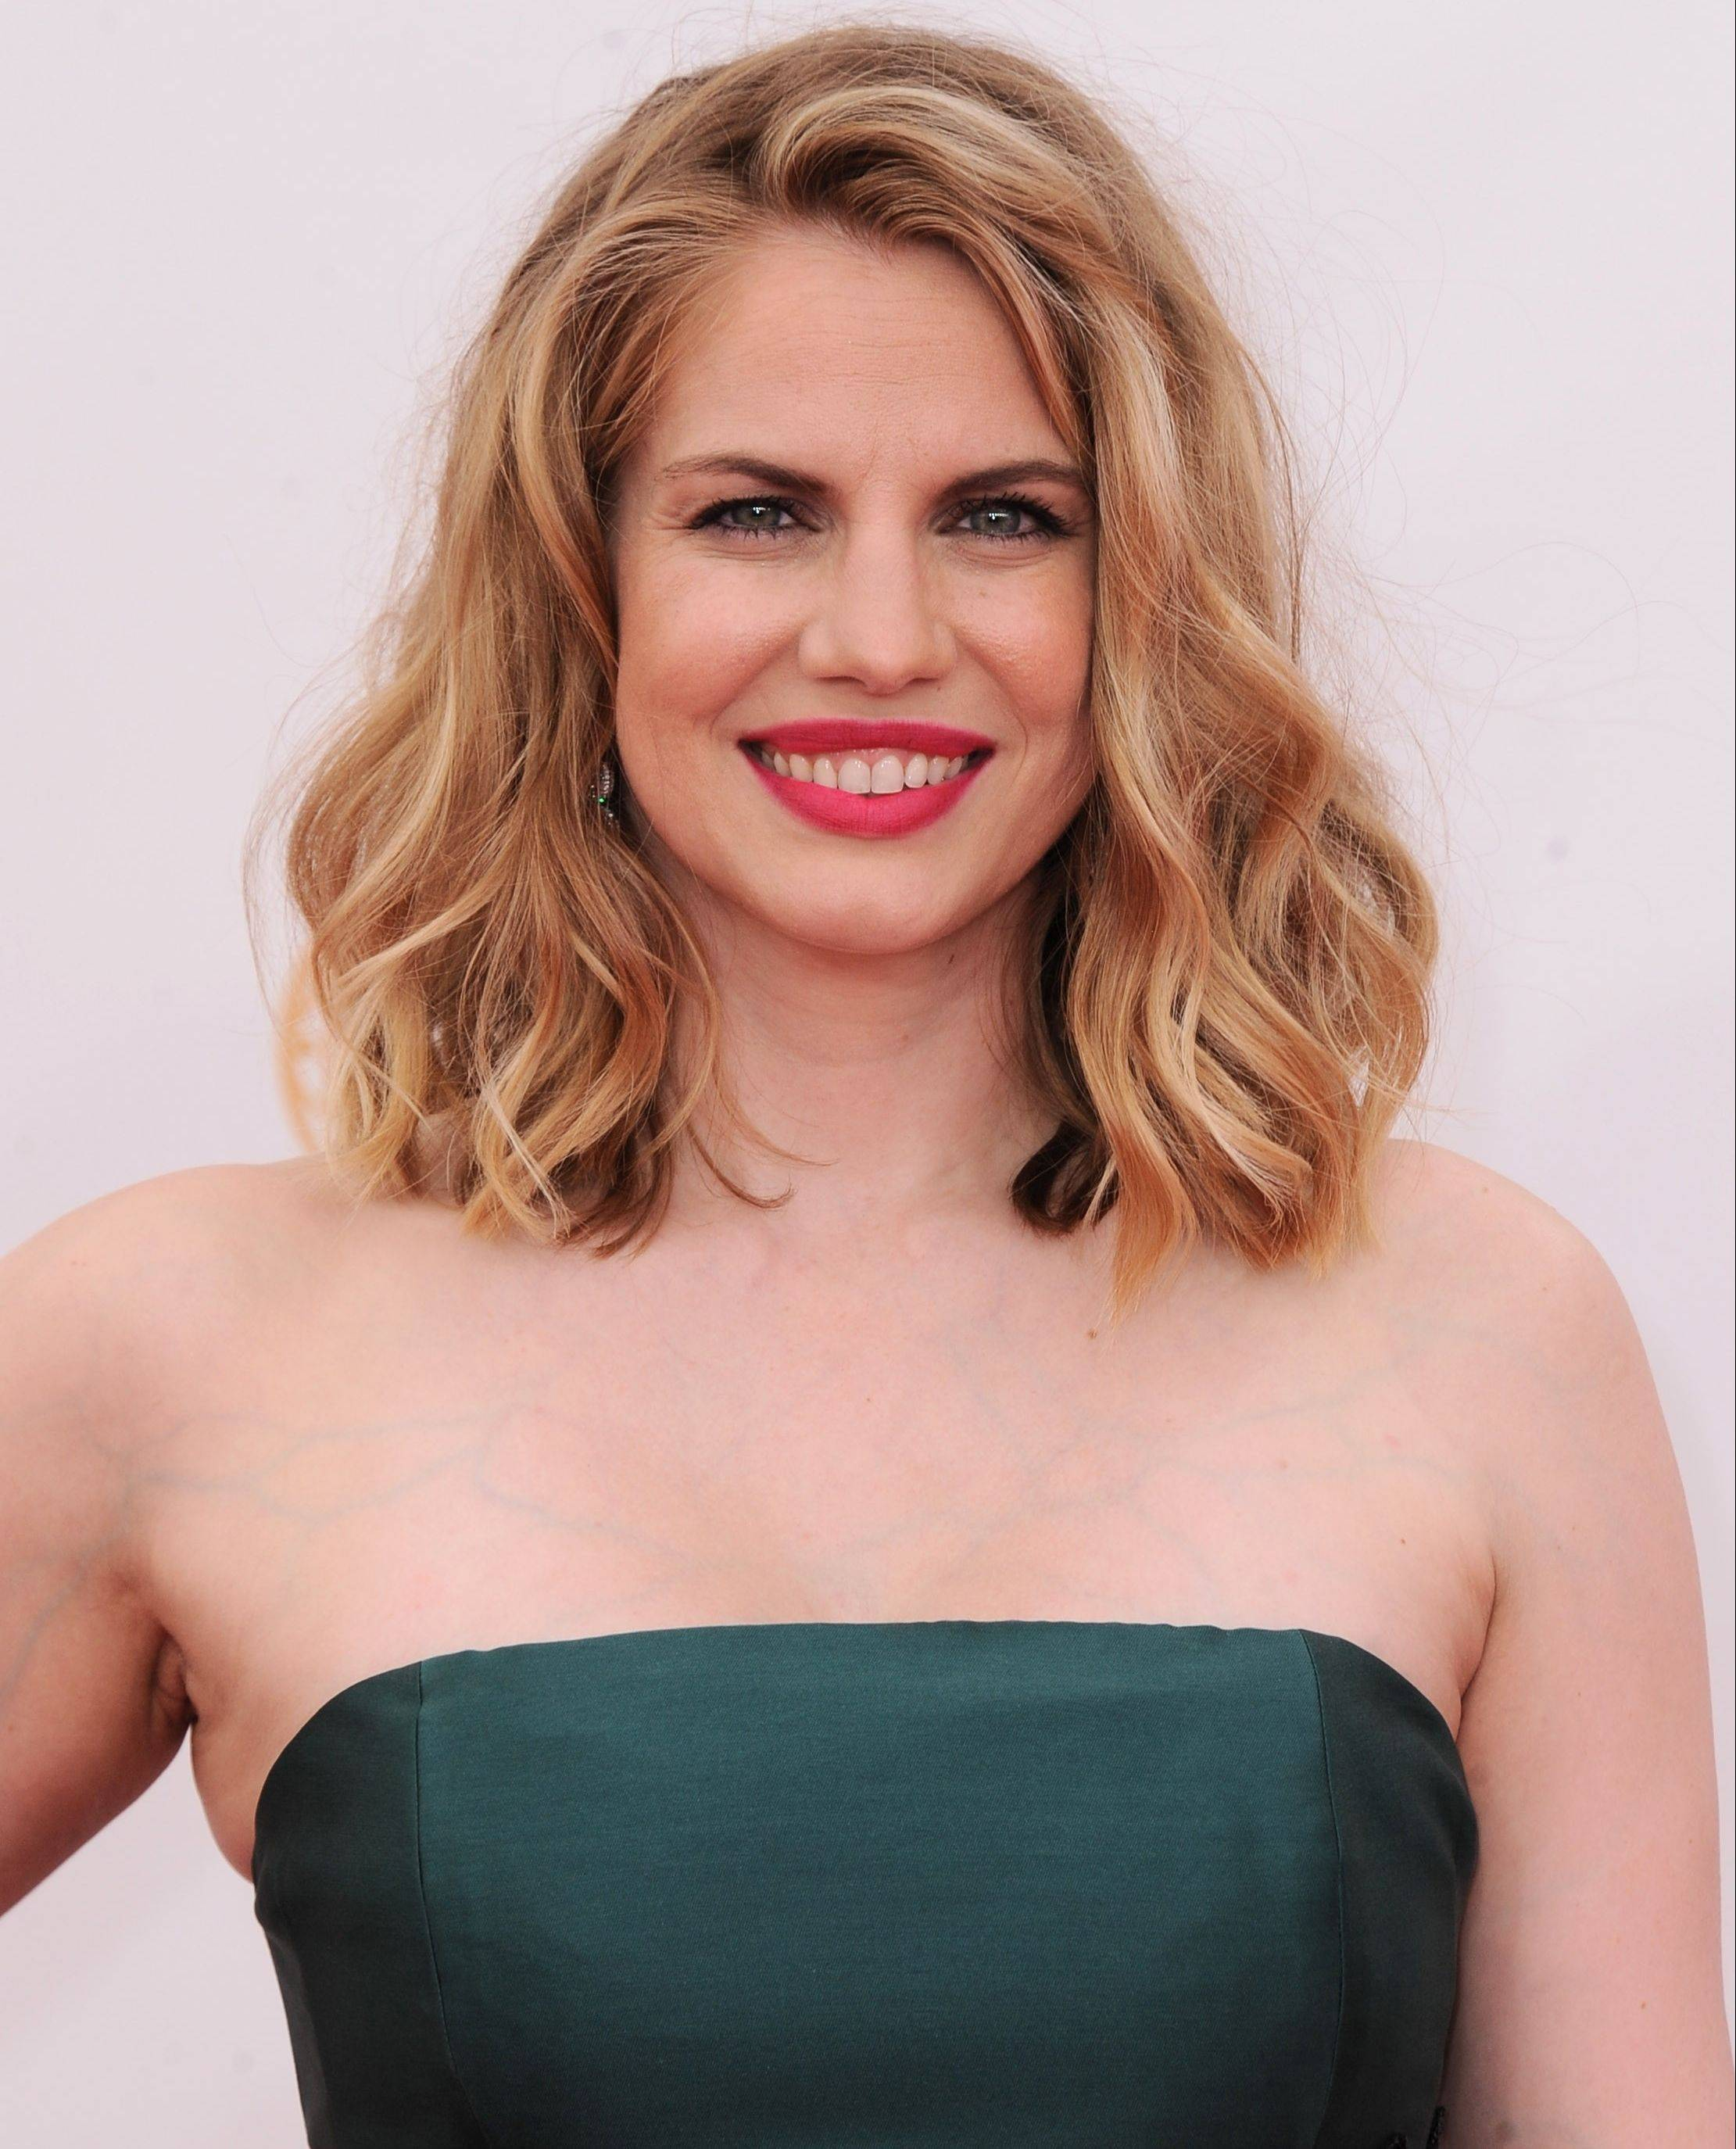 Outstanding Supporting Actress nominee Anna Chlumsky, of Broadview, arrives at the 65th Primetime Emmy Awards at the Nokia Theatre Sept. 22 in Los Angeles wearing a Badgley Mischka gown.